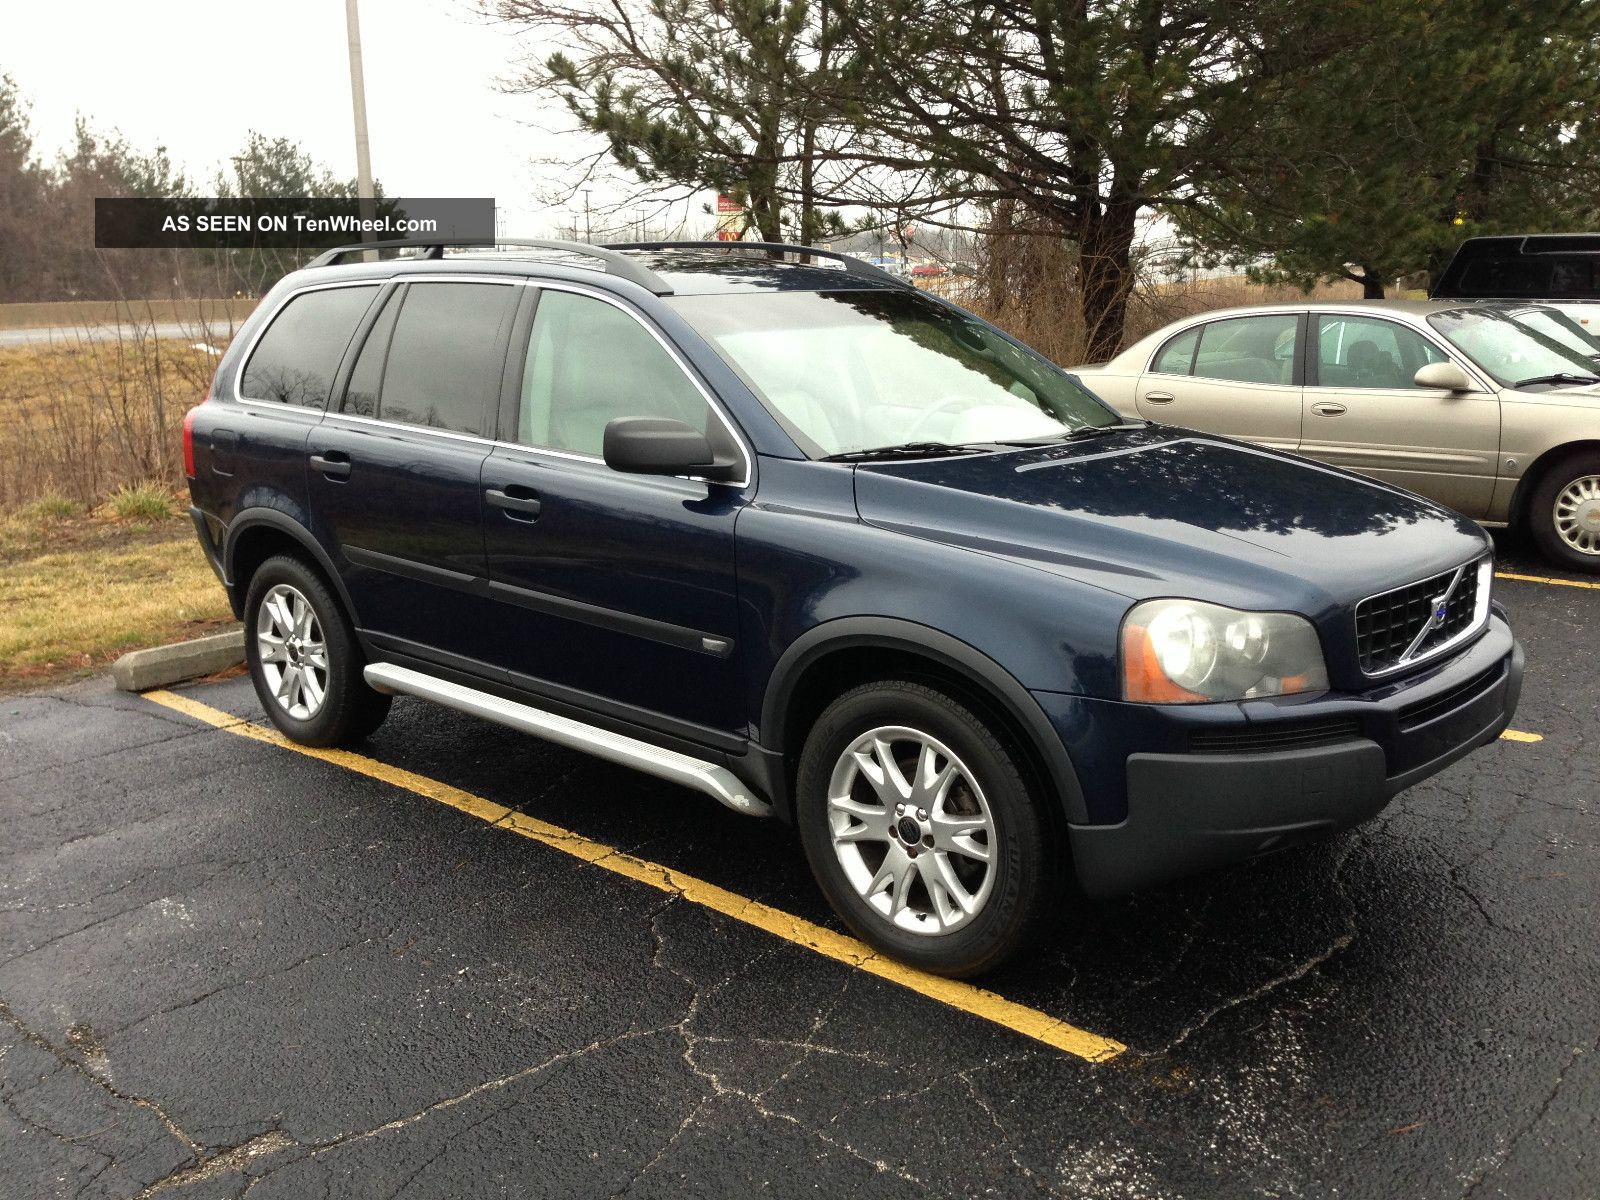 2004 volvo xc90 t6 wagon 4 door 2 9l awd fully loaded. Black Bedroom Furniture Sets. Home Design Ideas